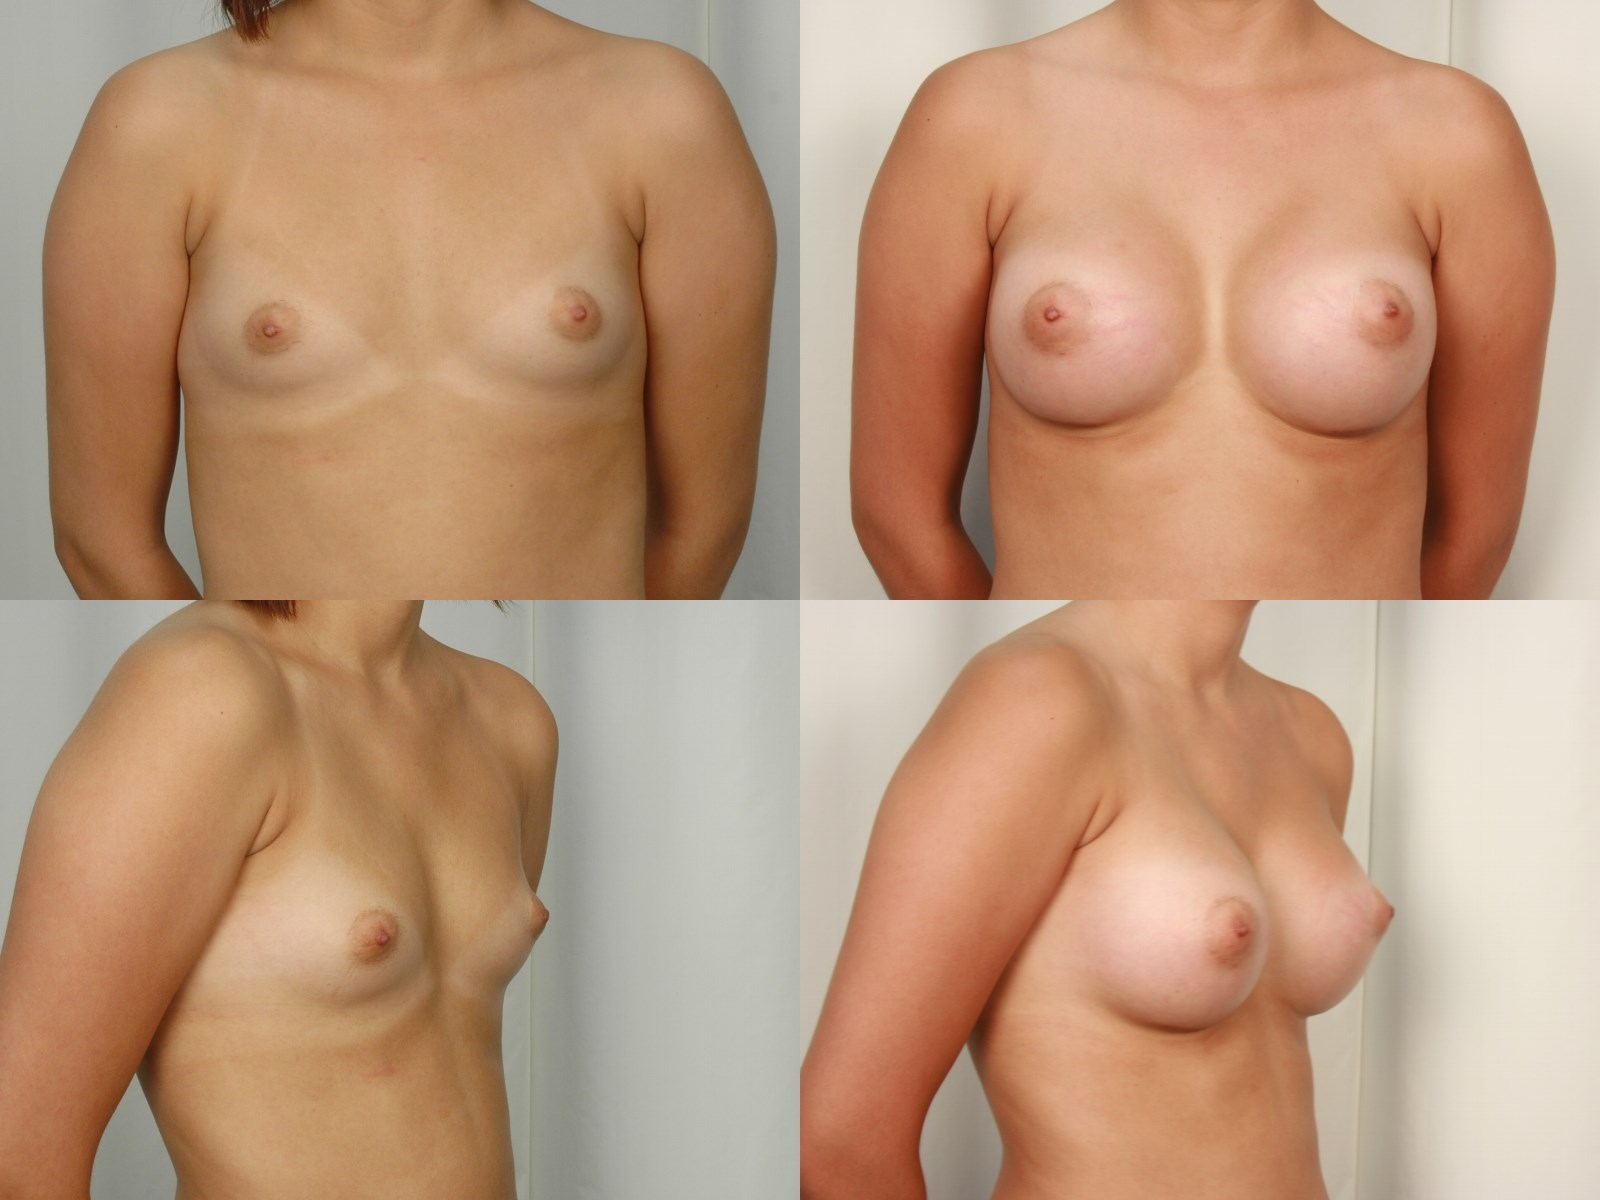 Breast Implants - Side After